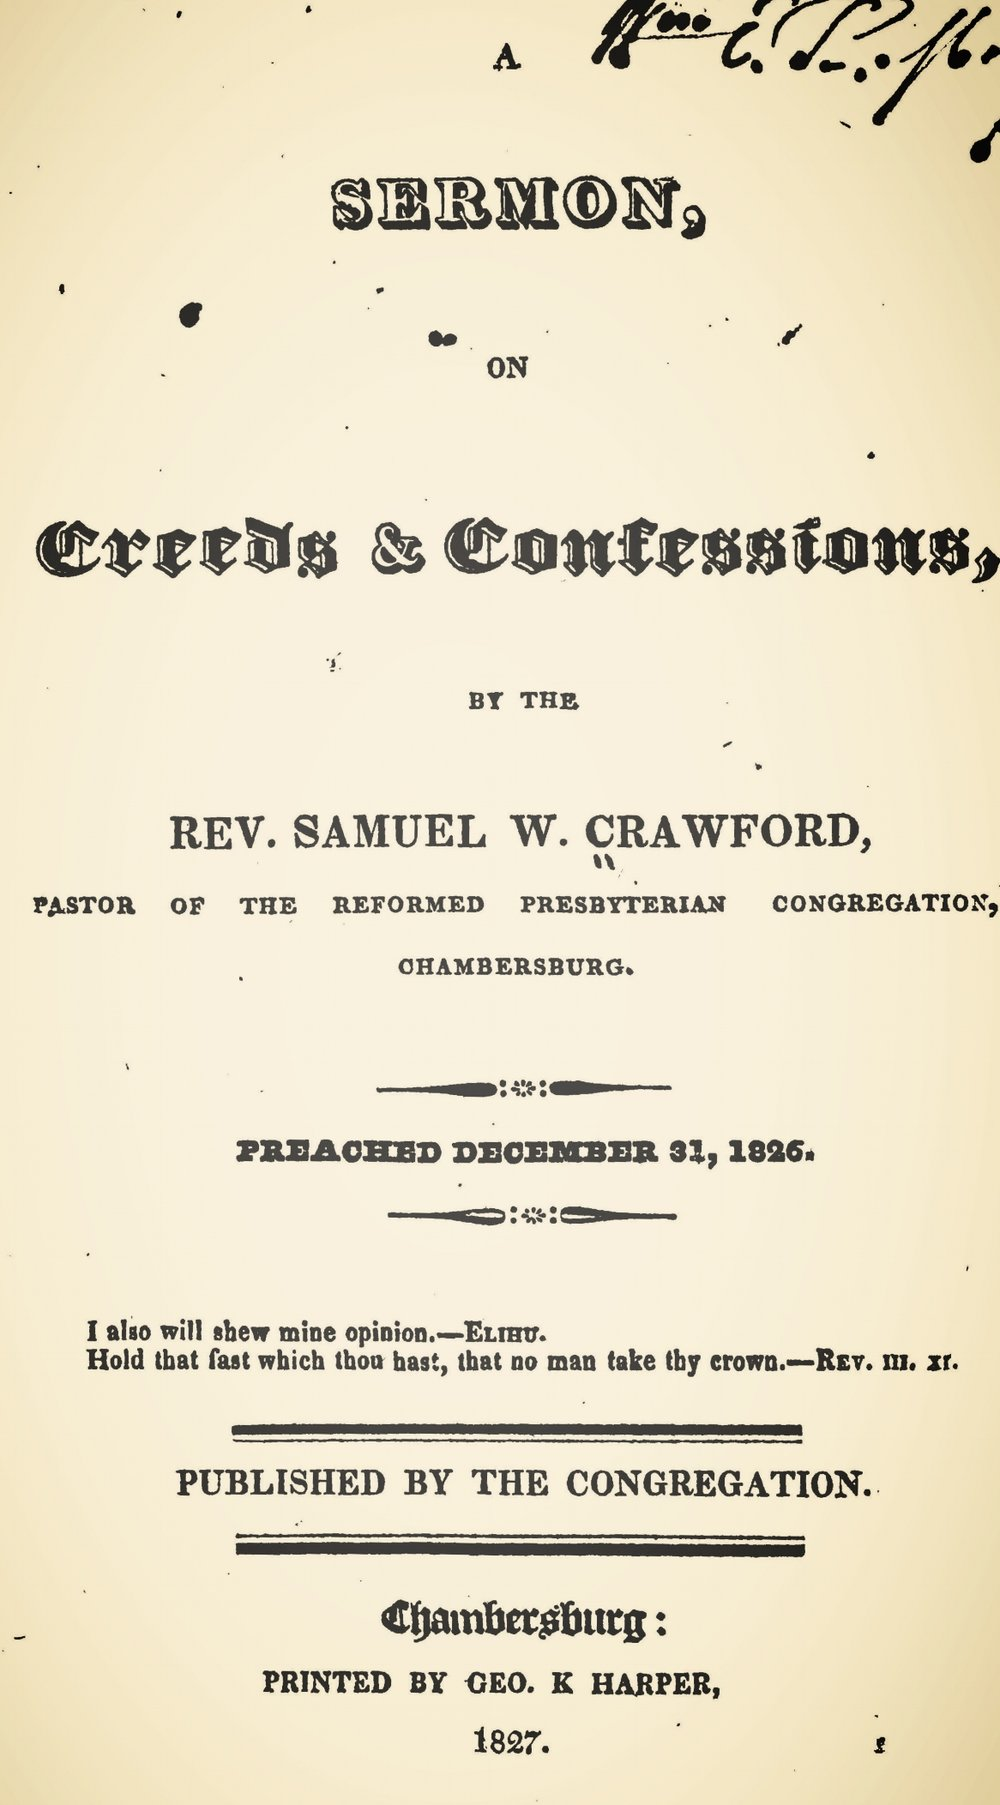 Crawford, Samuel Wylie, A Sermon on Creeds and Confessions Title Page.jpg